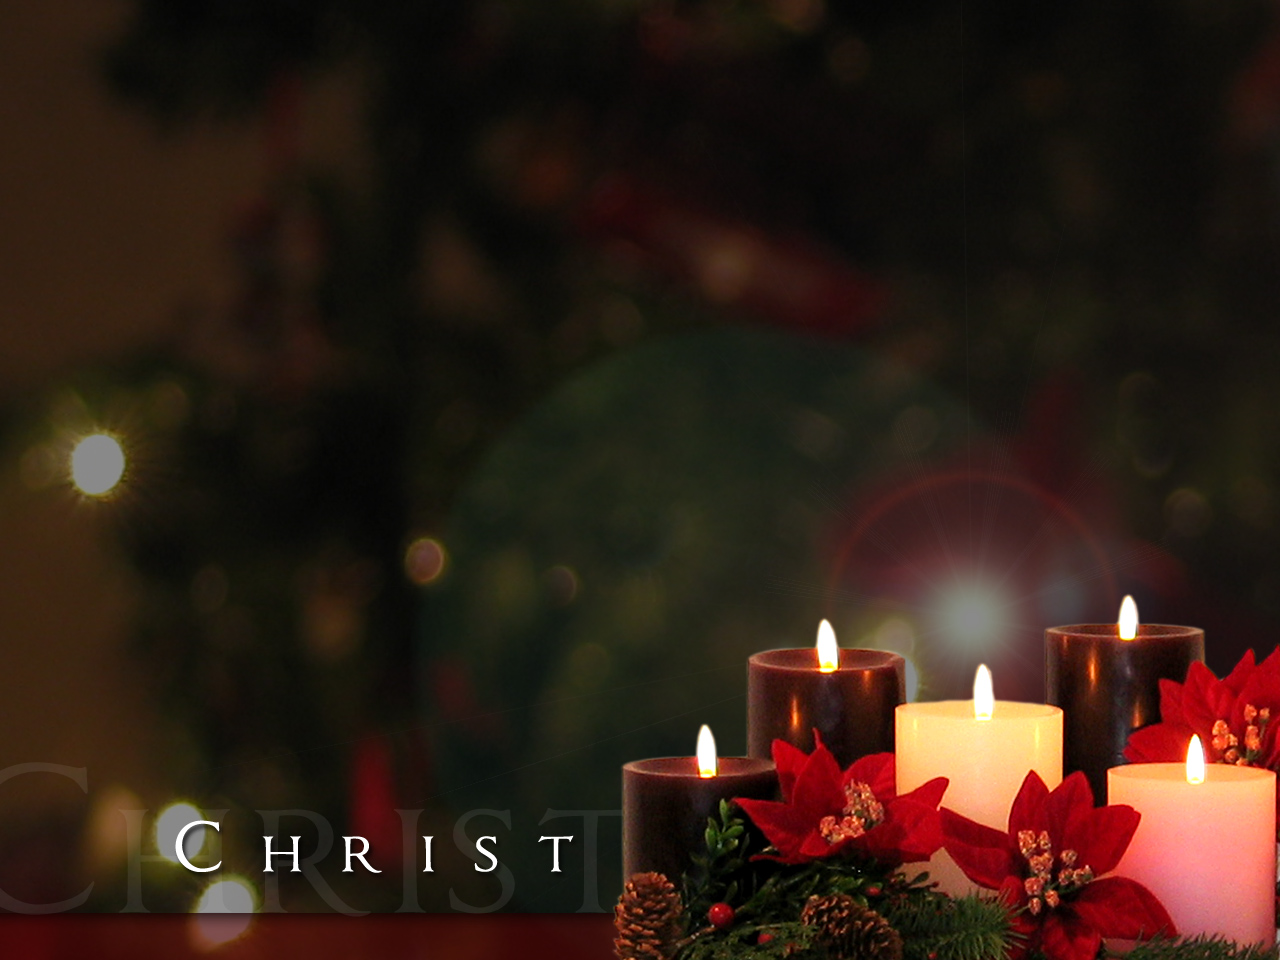 Merry Christmas Wallpaper Backgrounds 2014